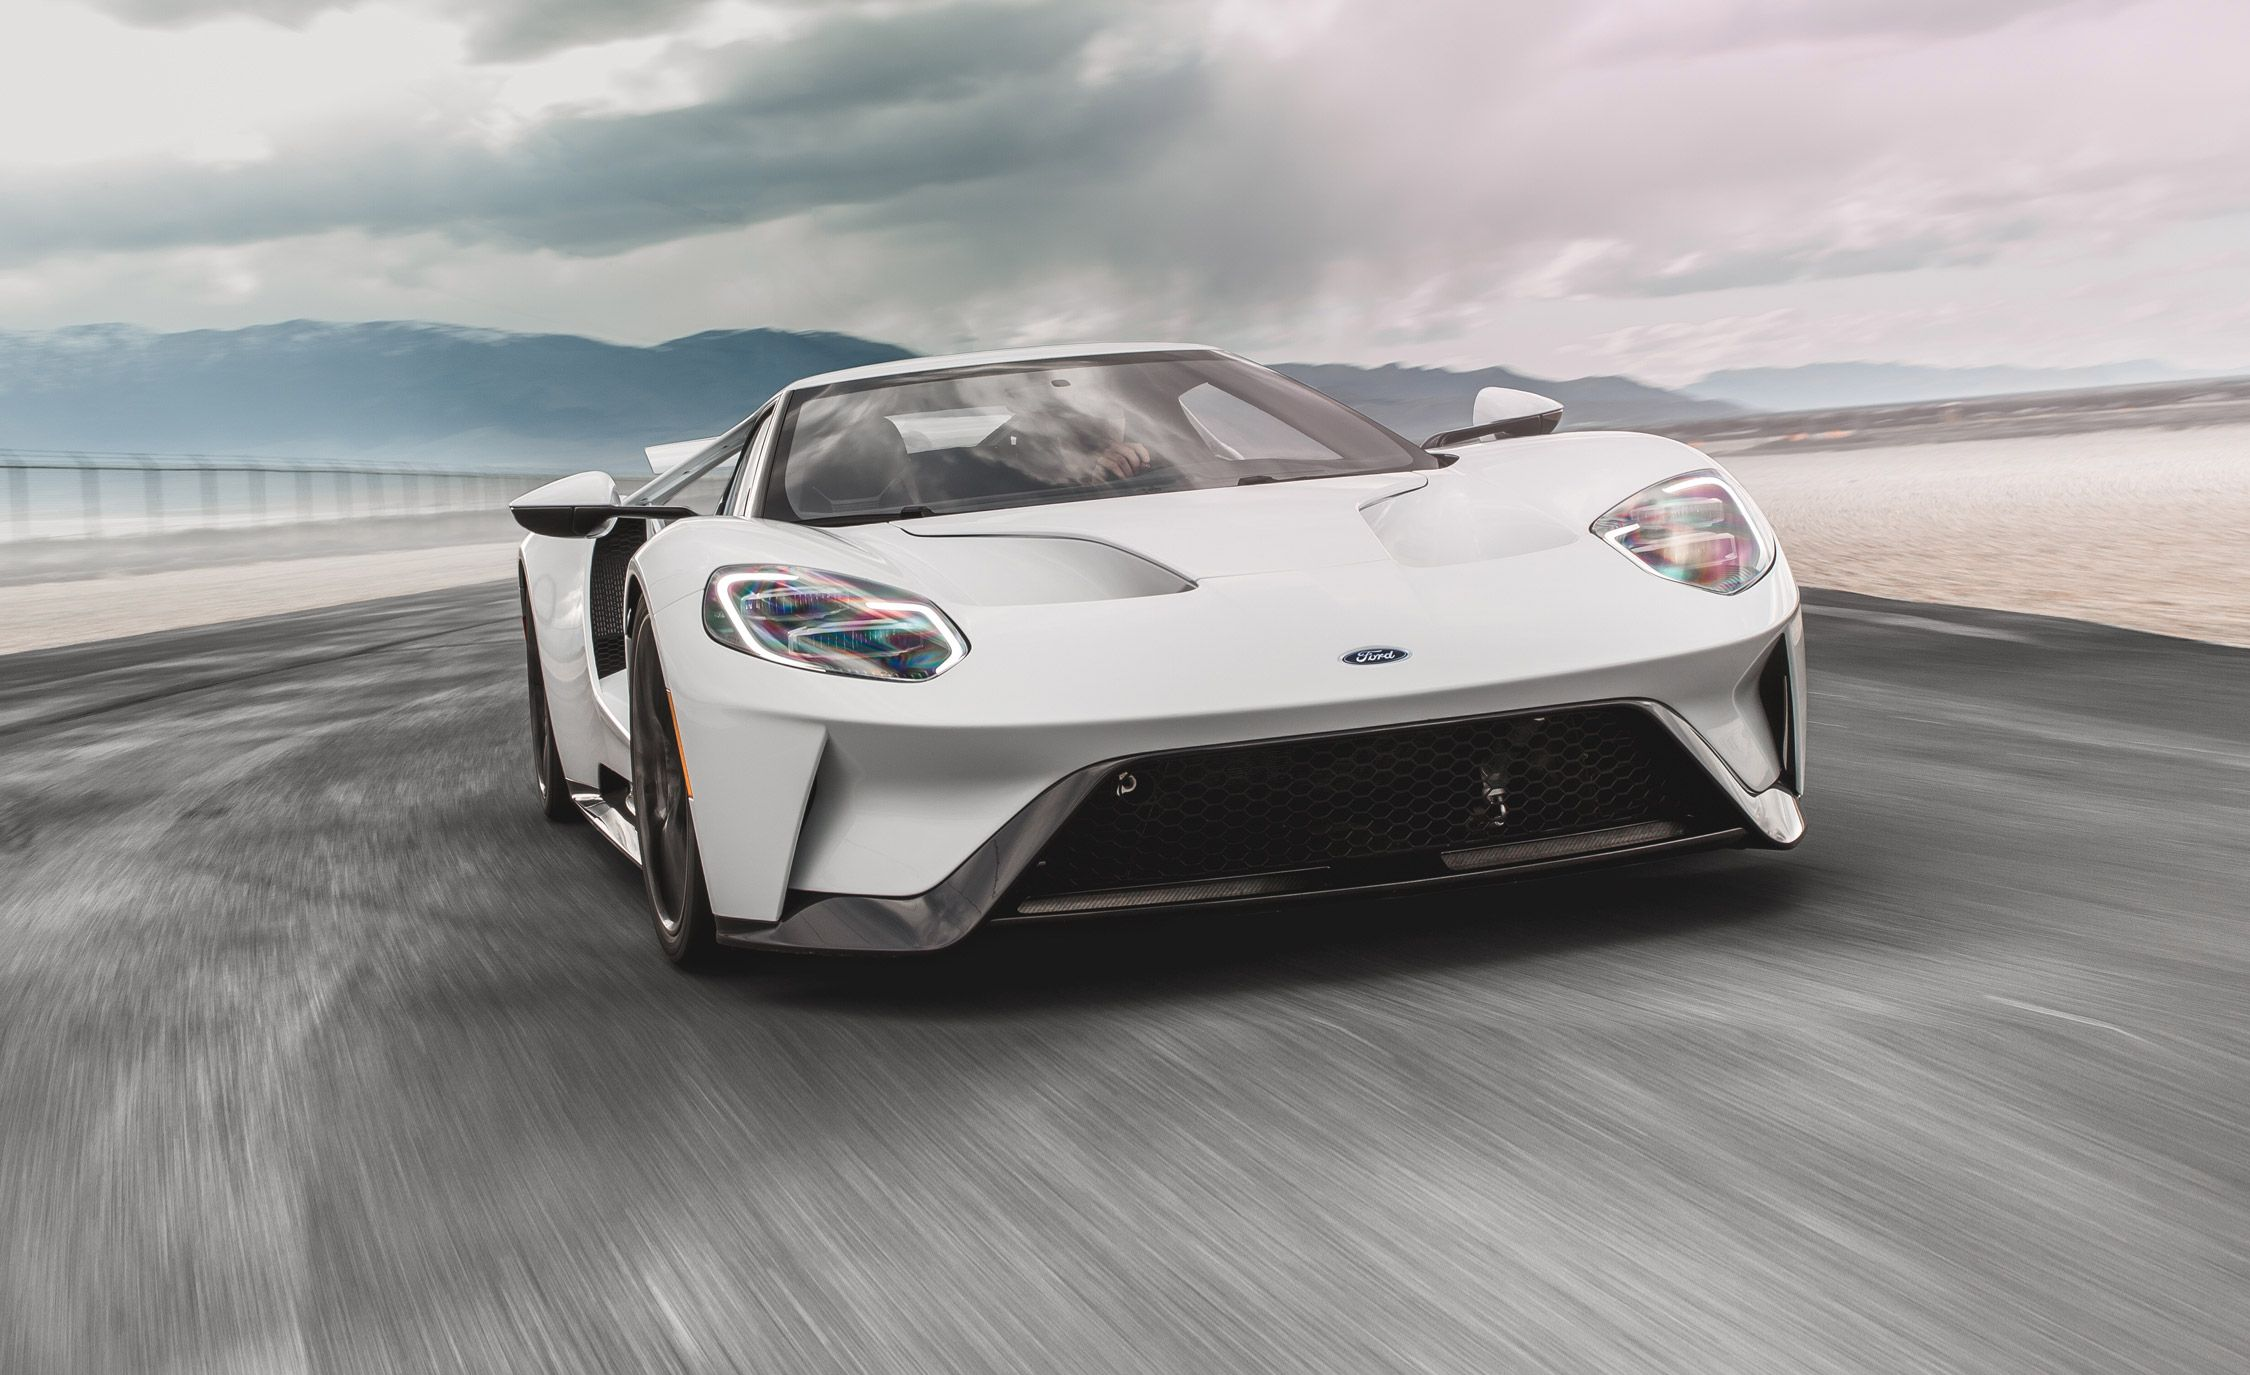 Ford Gt Supercar First Drive Review Car And Driver Rh Caranddriver Com